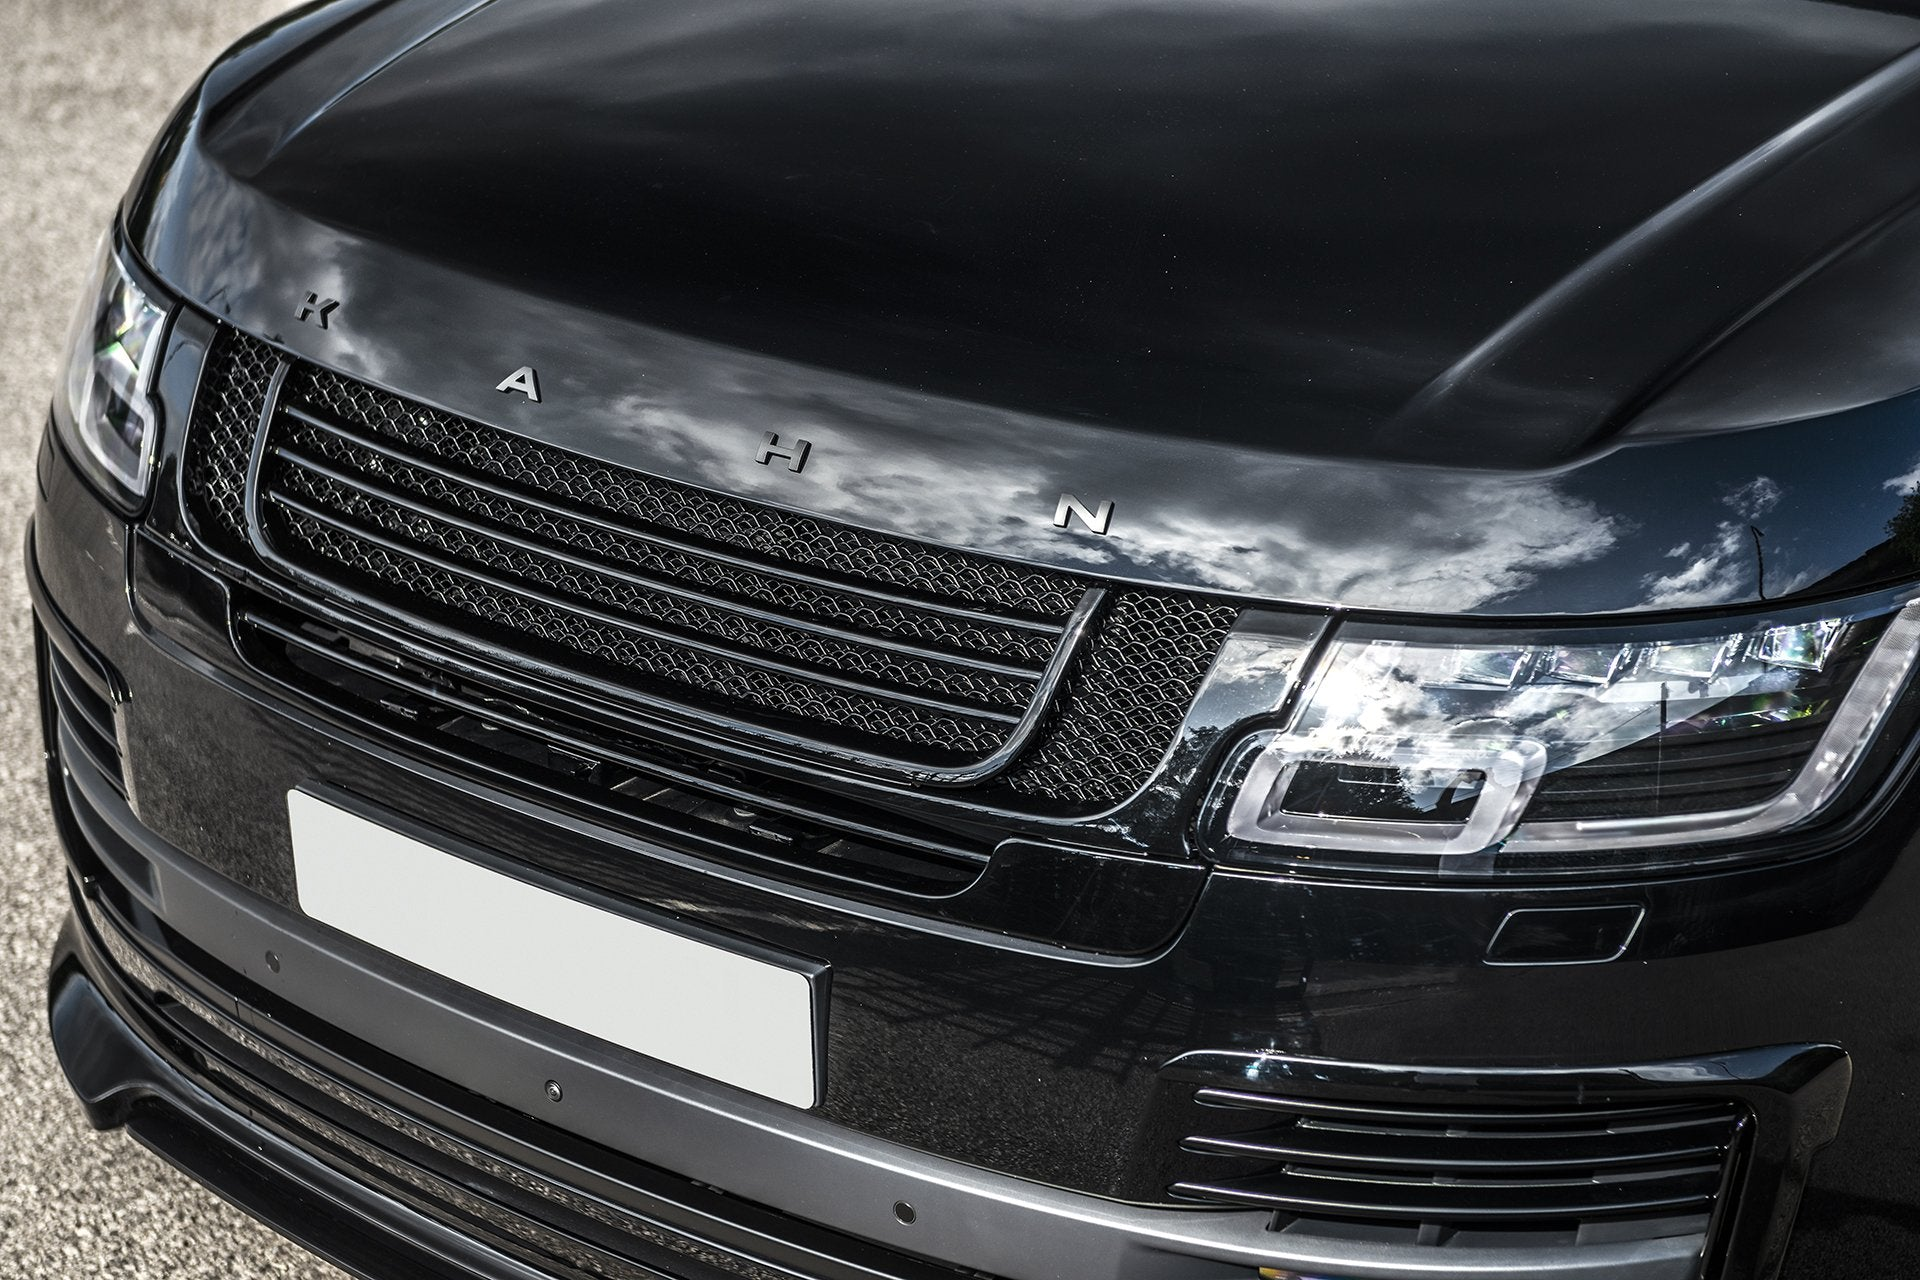 Range Rover (2018-Present) Exposed Carbon Front Grille - Project Kahn